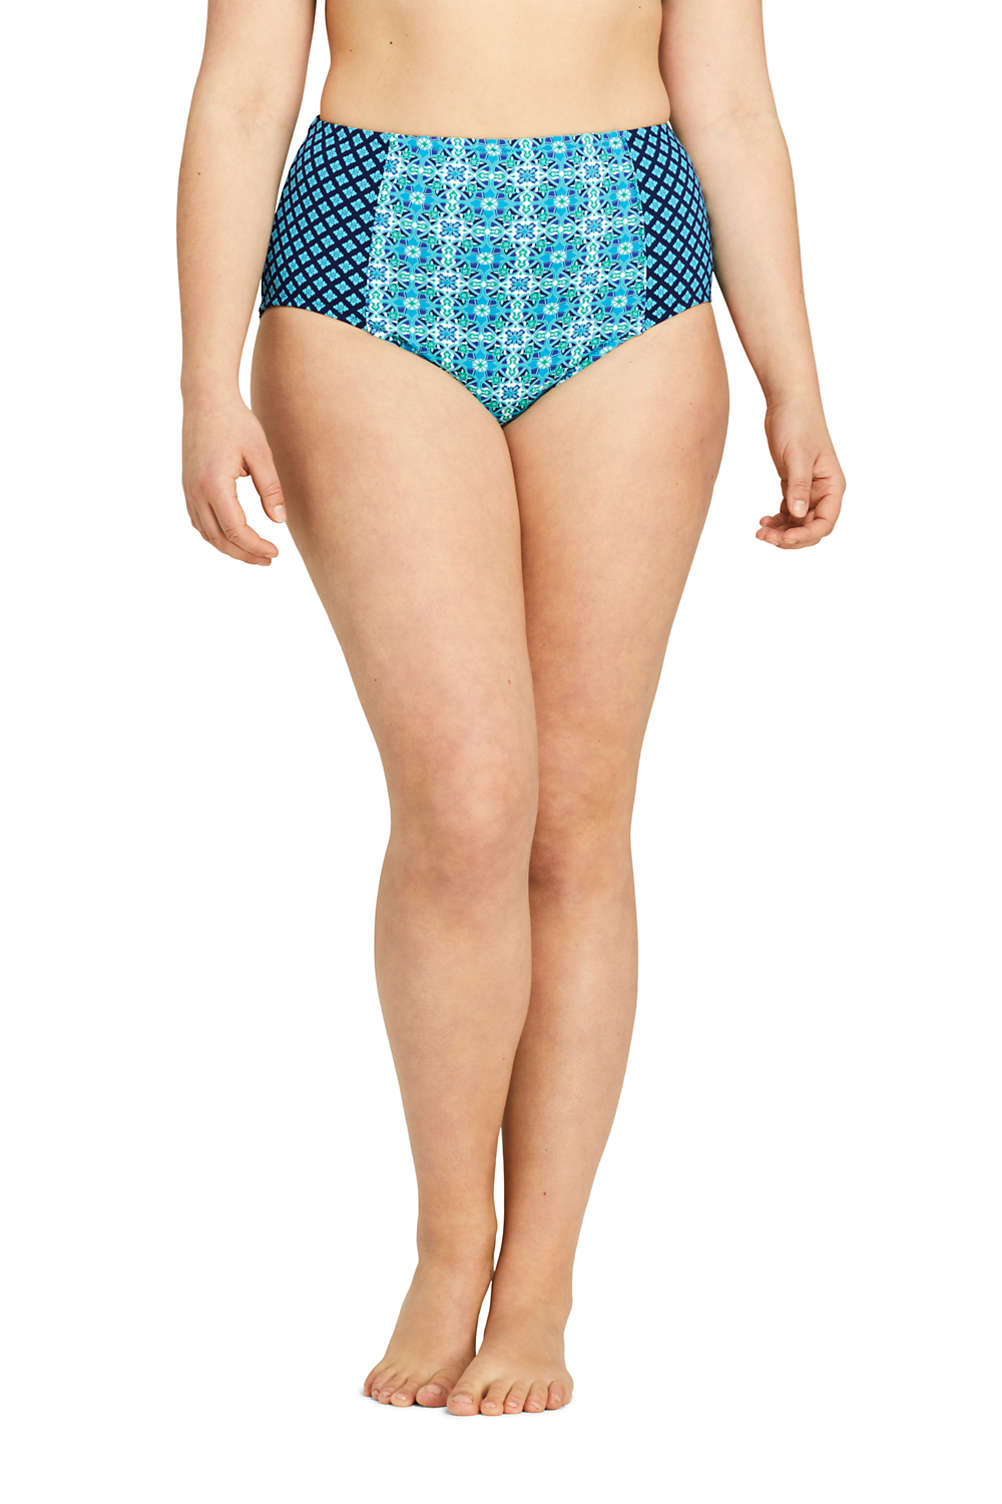 e4b6520c493 Women's Plus Size Retro High Waisted Bikini Bottoms Print from Lands' End